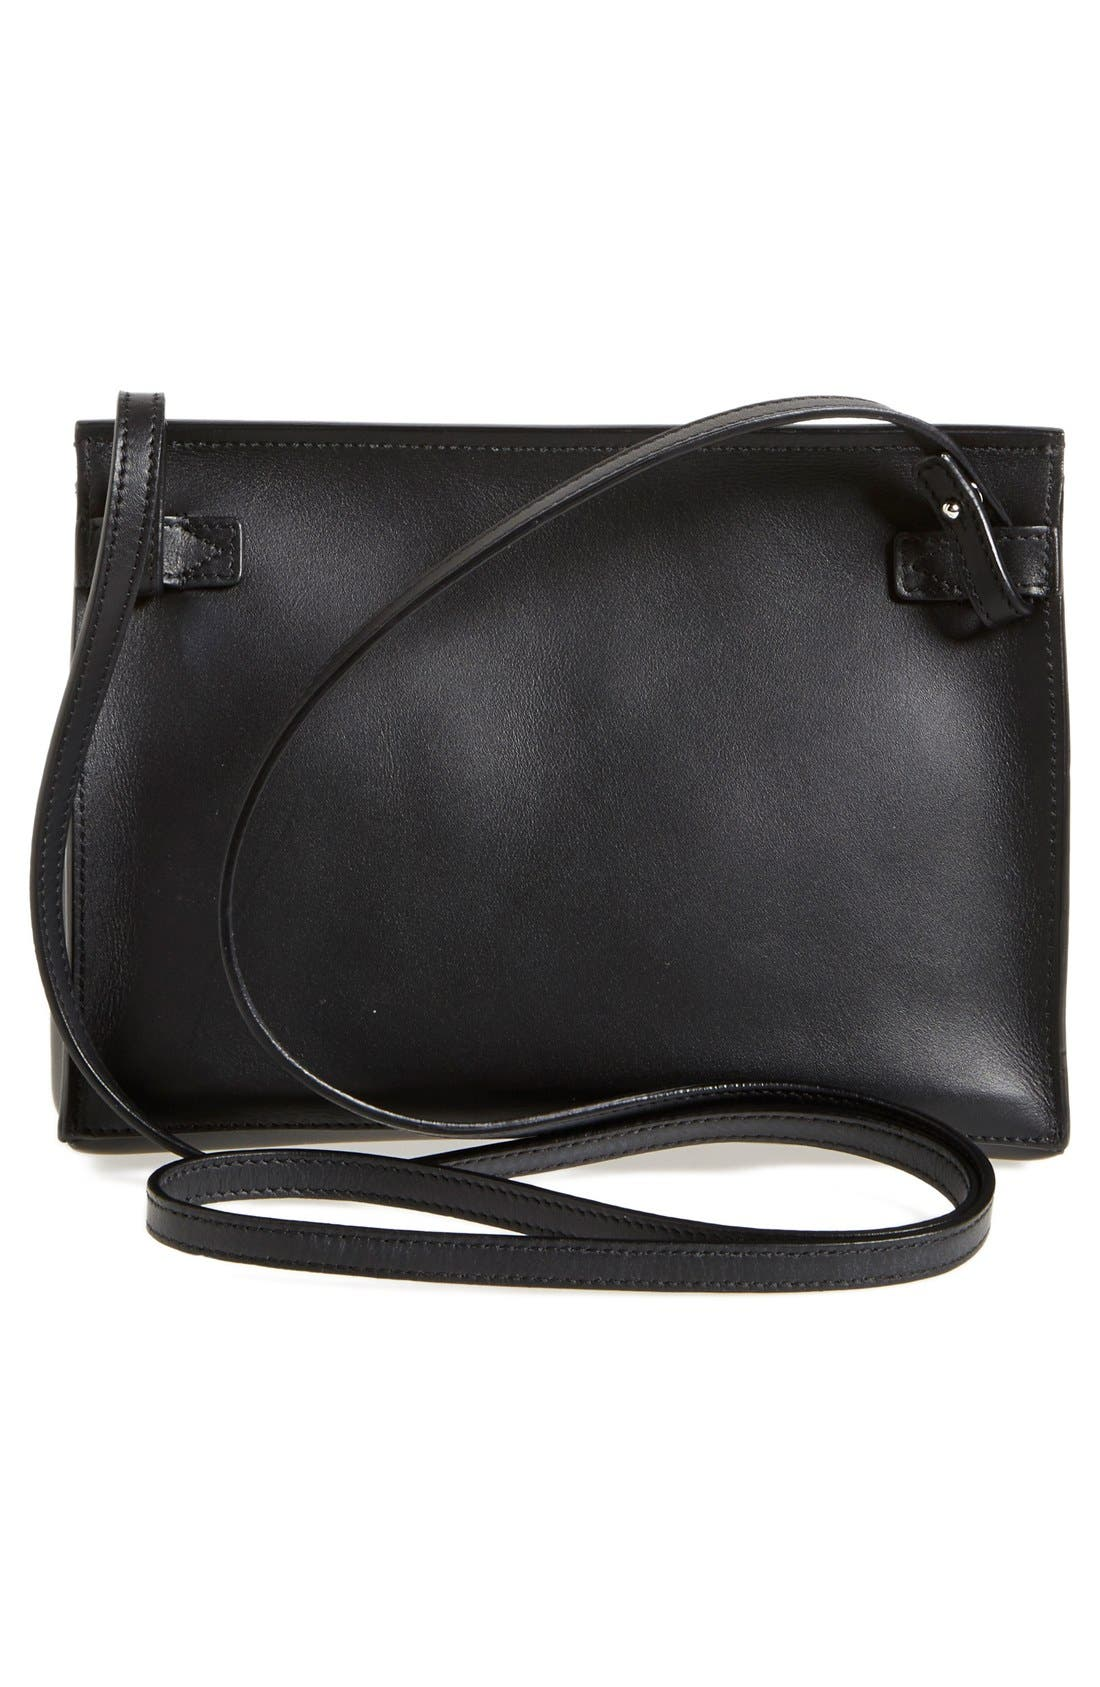 'Signature Collection - Small' Leather Crossbody Bag,                             Alternate thumbnail 2, color,                             Black